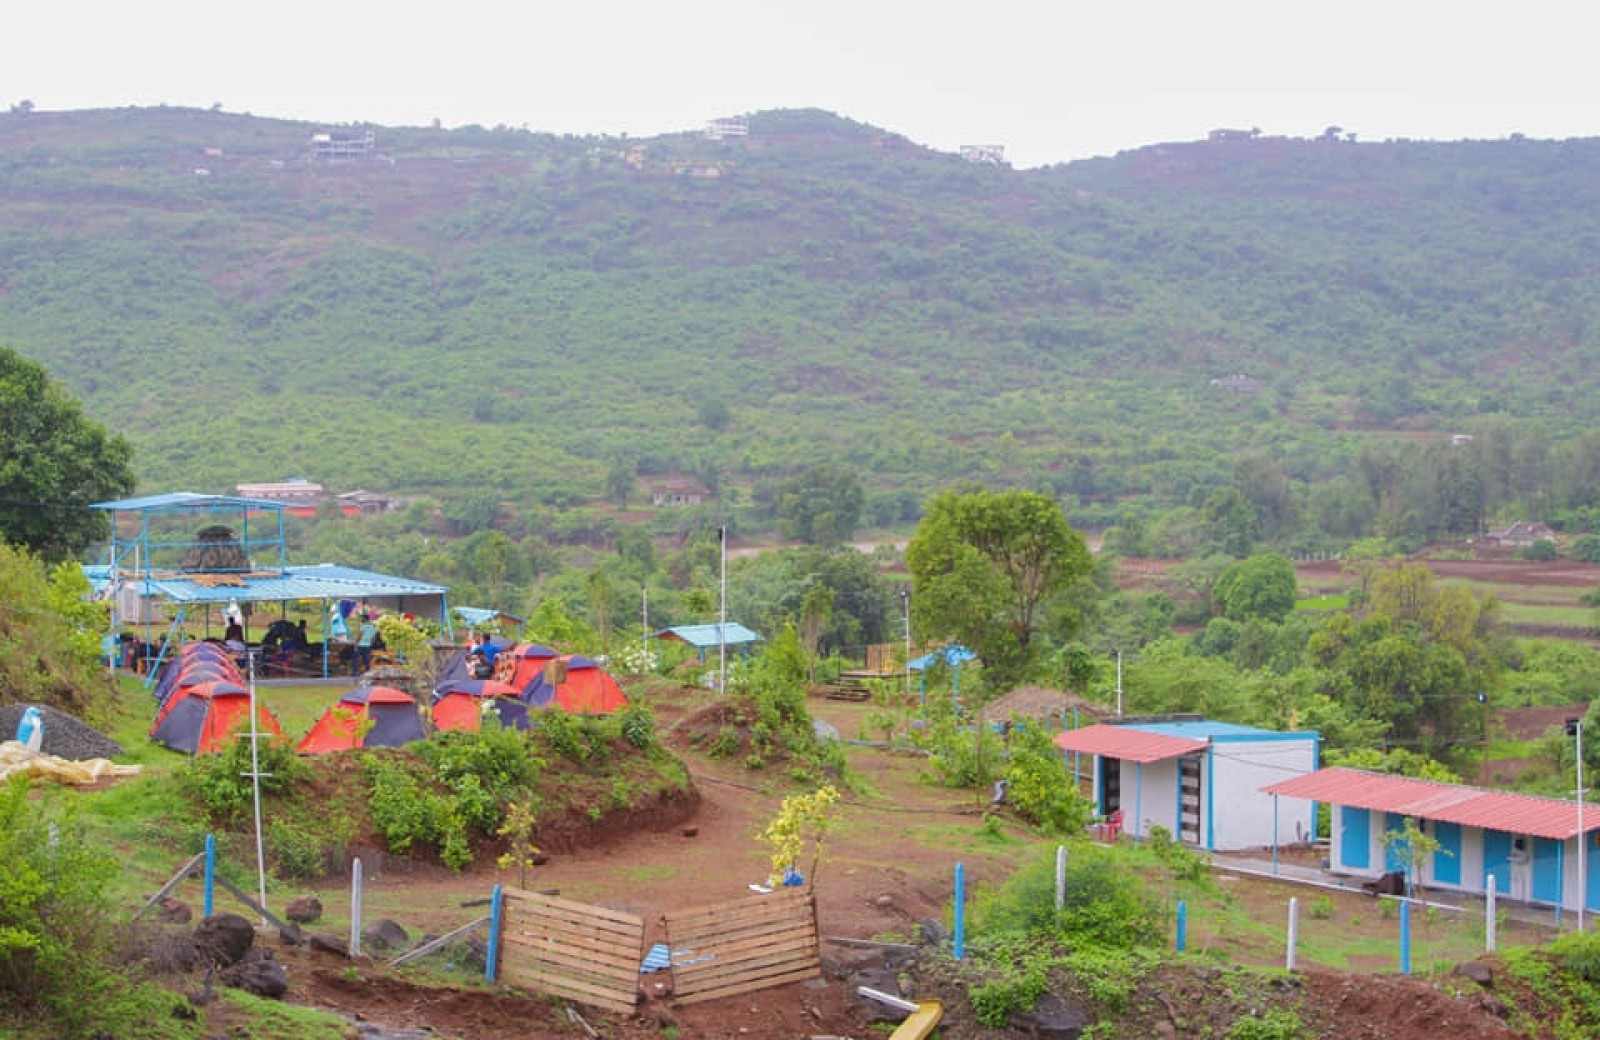 Camping near the Visapur Fort